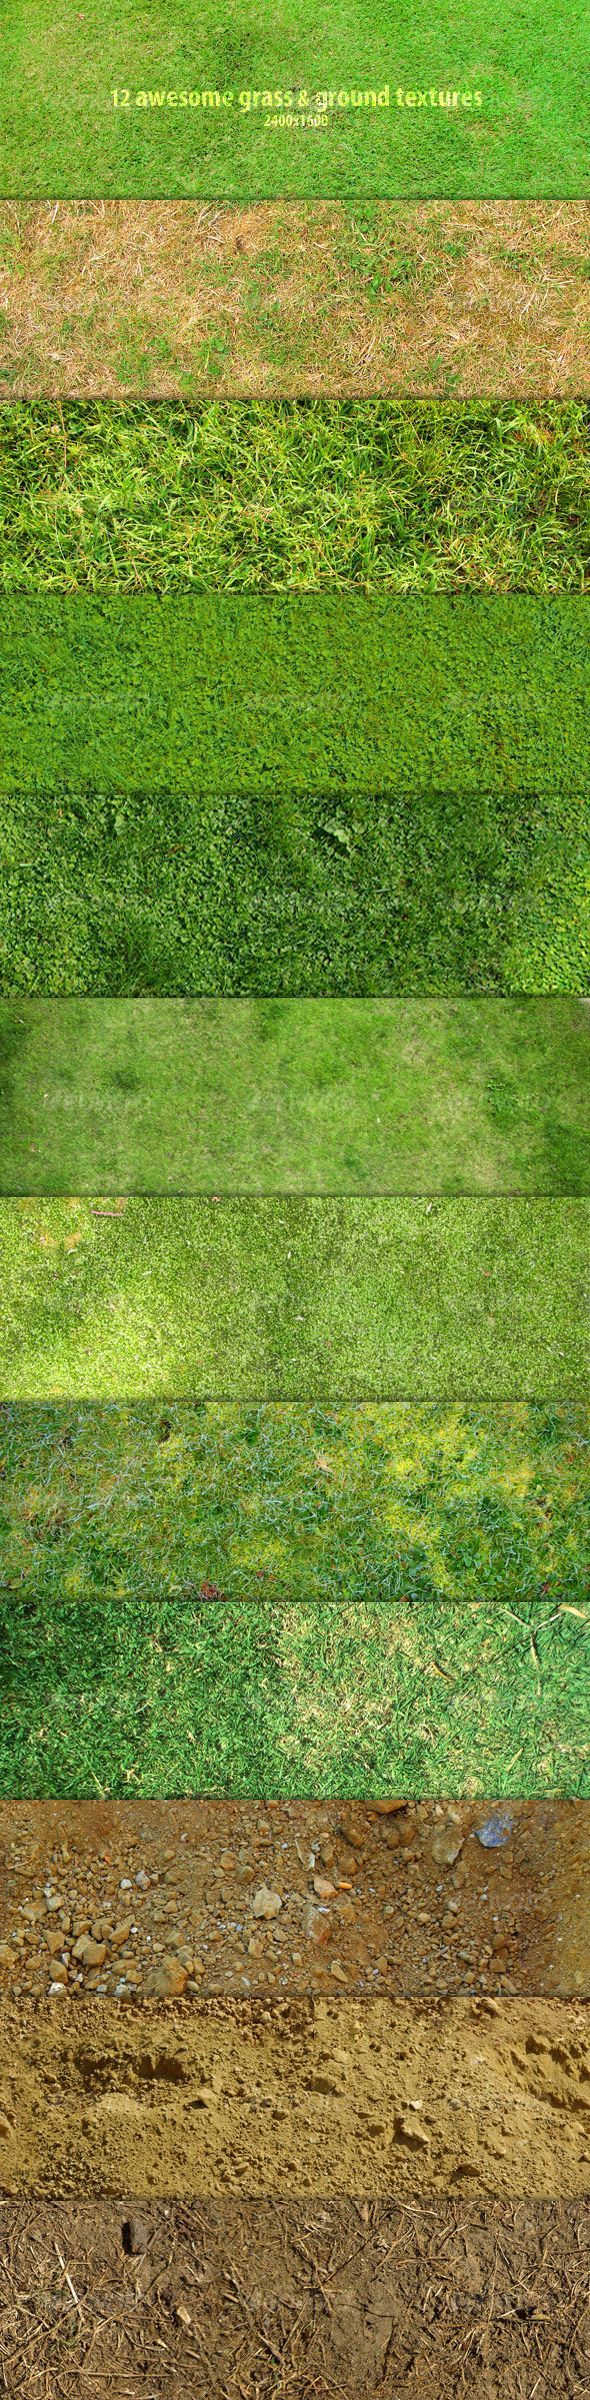 12 Awesome grass & ground textures - GraphicRiver Item for Sale